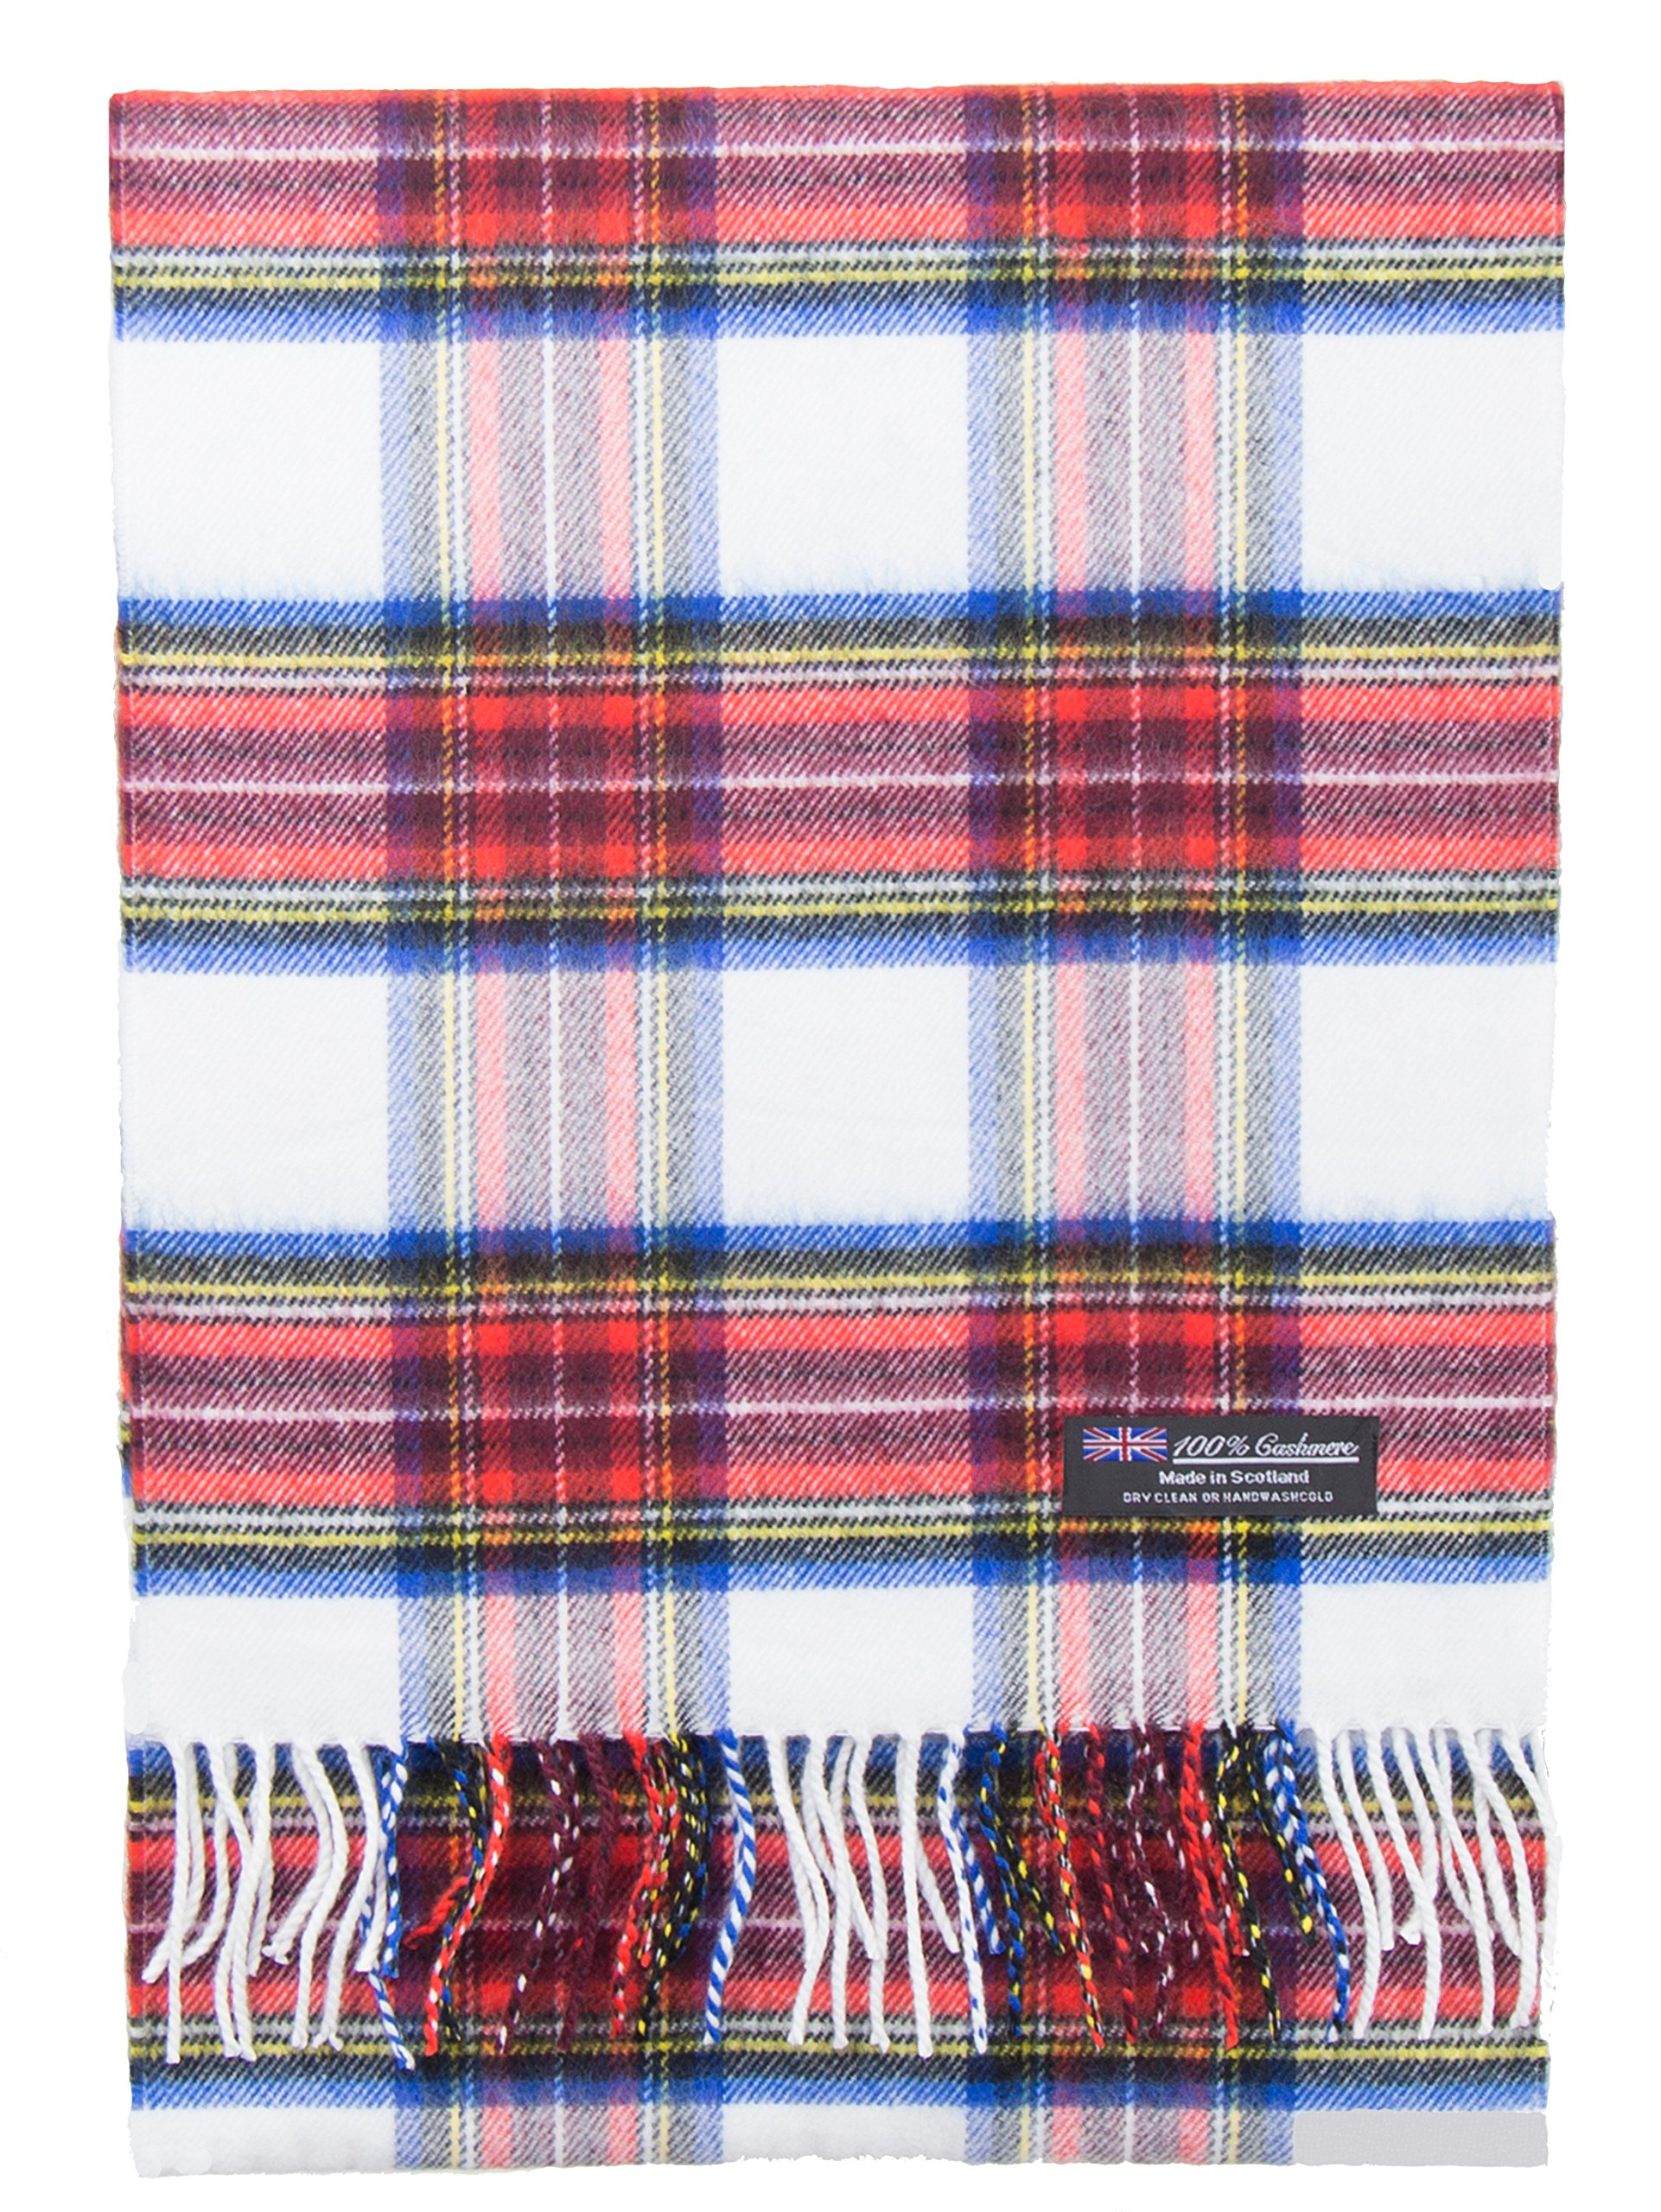 2 PLY 100% Cashmere Winter Scarf Elegant Collection Made in Scotland Warm Soft Wool Solid Plaid (White Red Blue Green 1606)